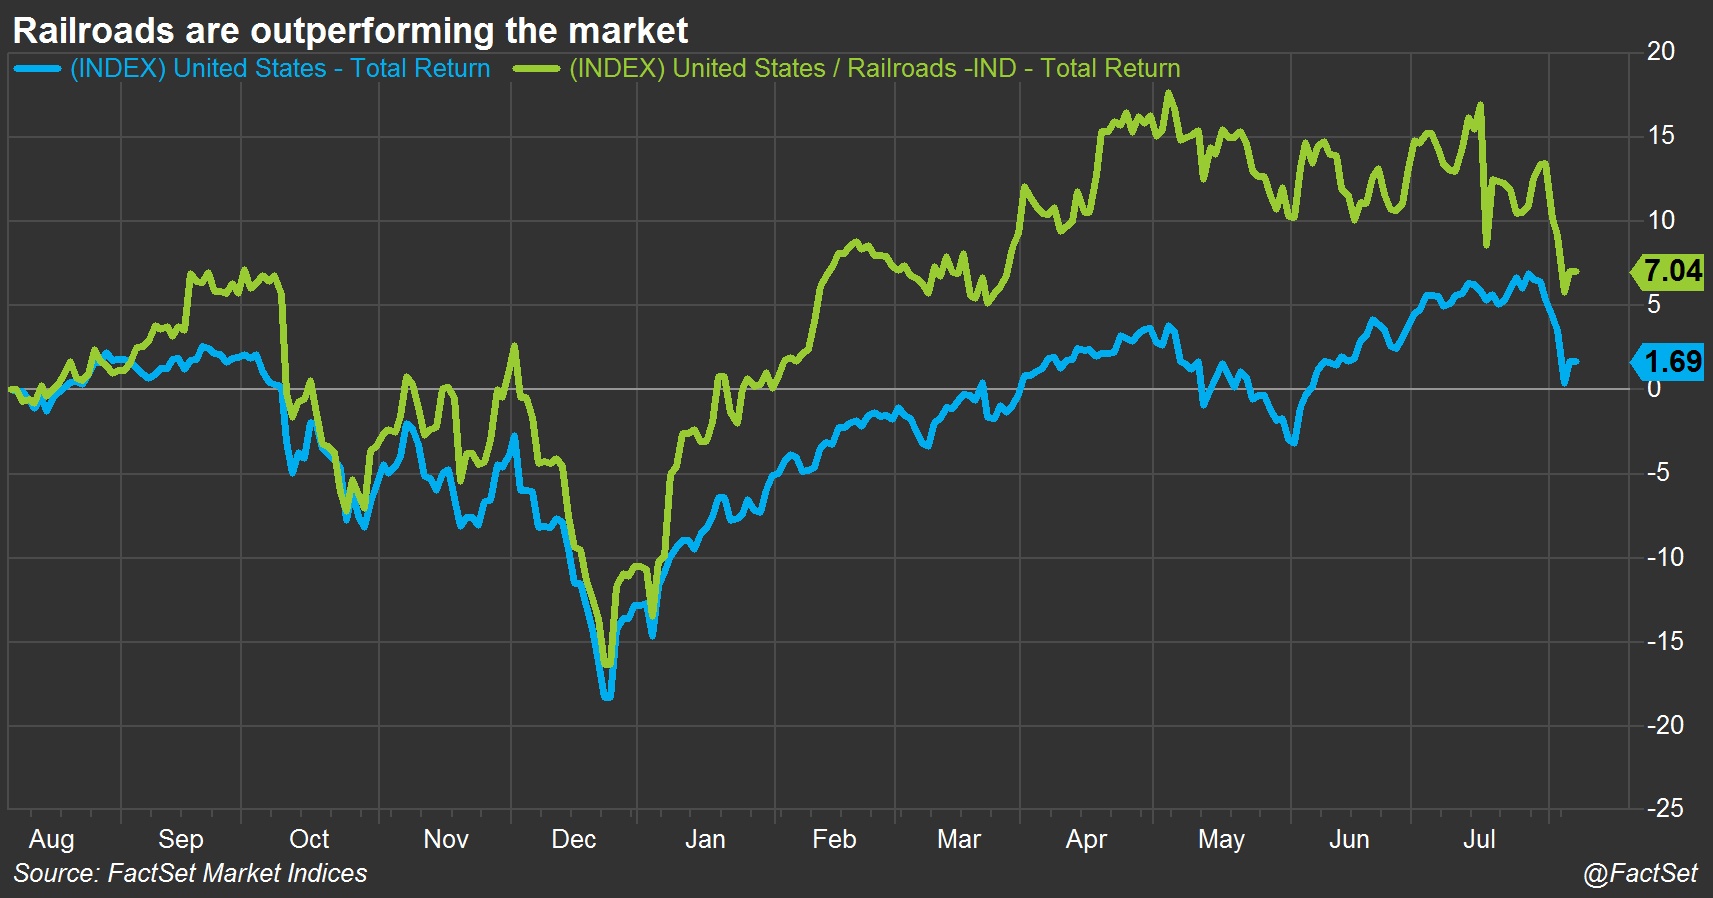 Railroad stocks are outperforming